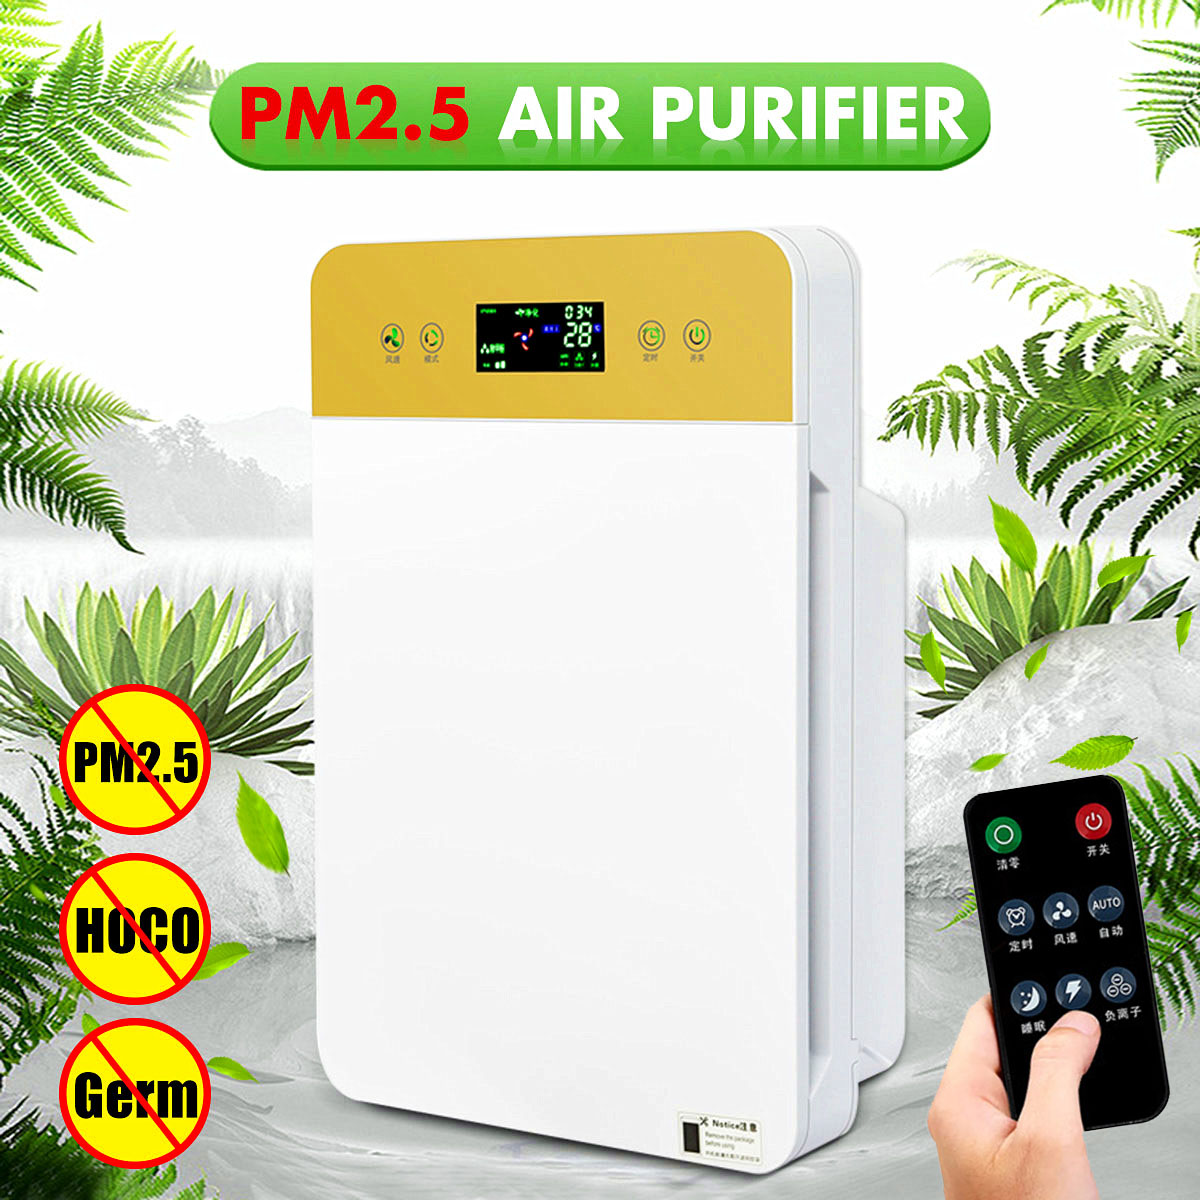 Upgrade Air Purifier 220V Remote Control Household HEPA Filter Ionizer PM2.5 Odor Formaldehyde Remove Sterilization Air CleanerUpgrade Air Purifier 220V Remote Control Household HEPA Filter Ionizer PM2.5 Odor Formaldehyde Remove Sterilization Air Cleaner